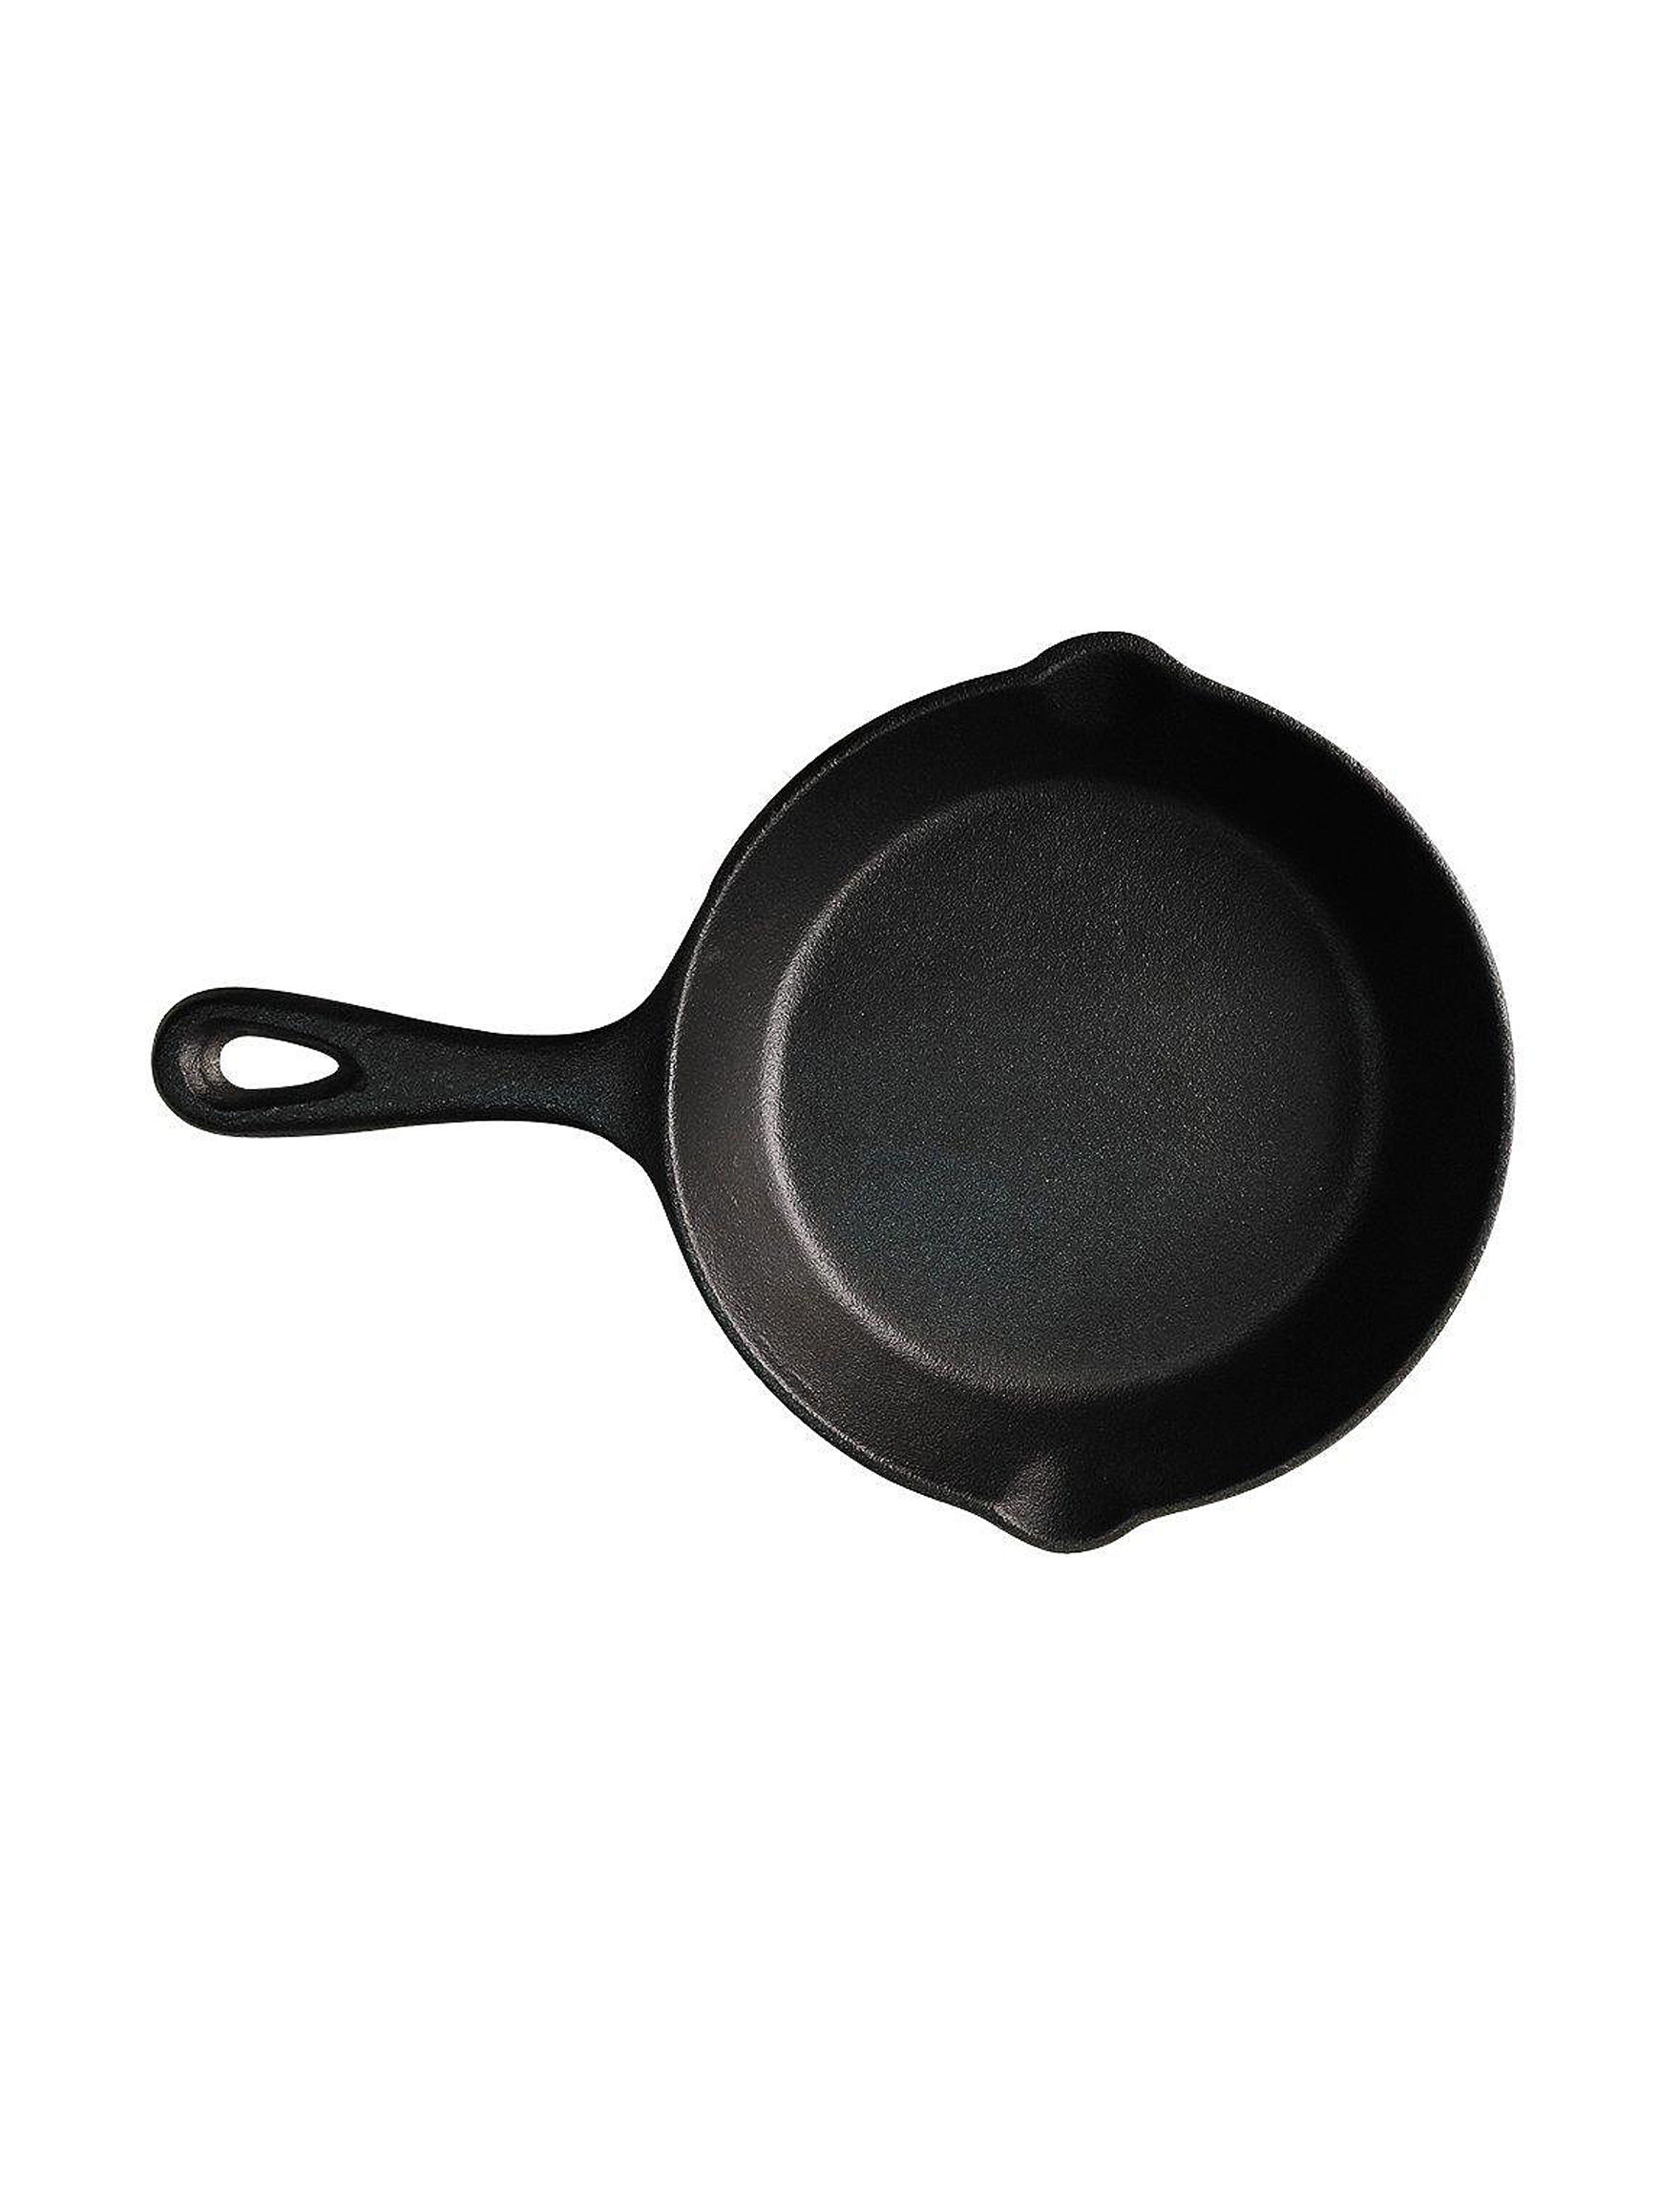 Diamond Home Black Frying Pans & Skillets Cookware